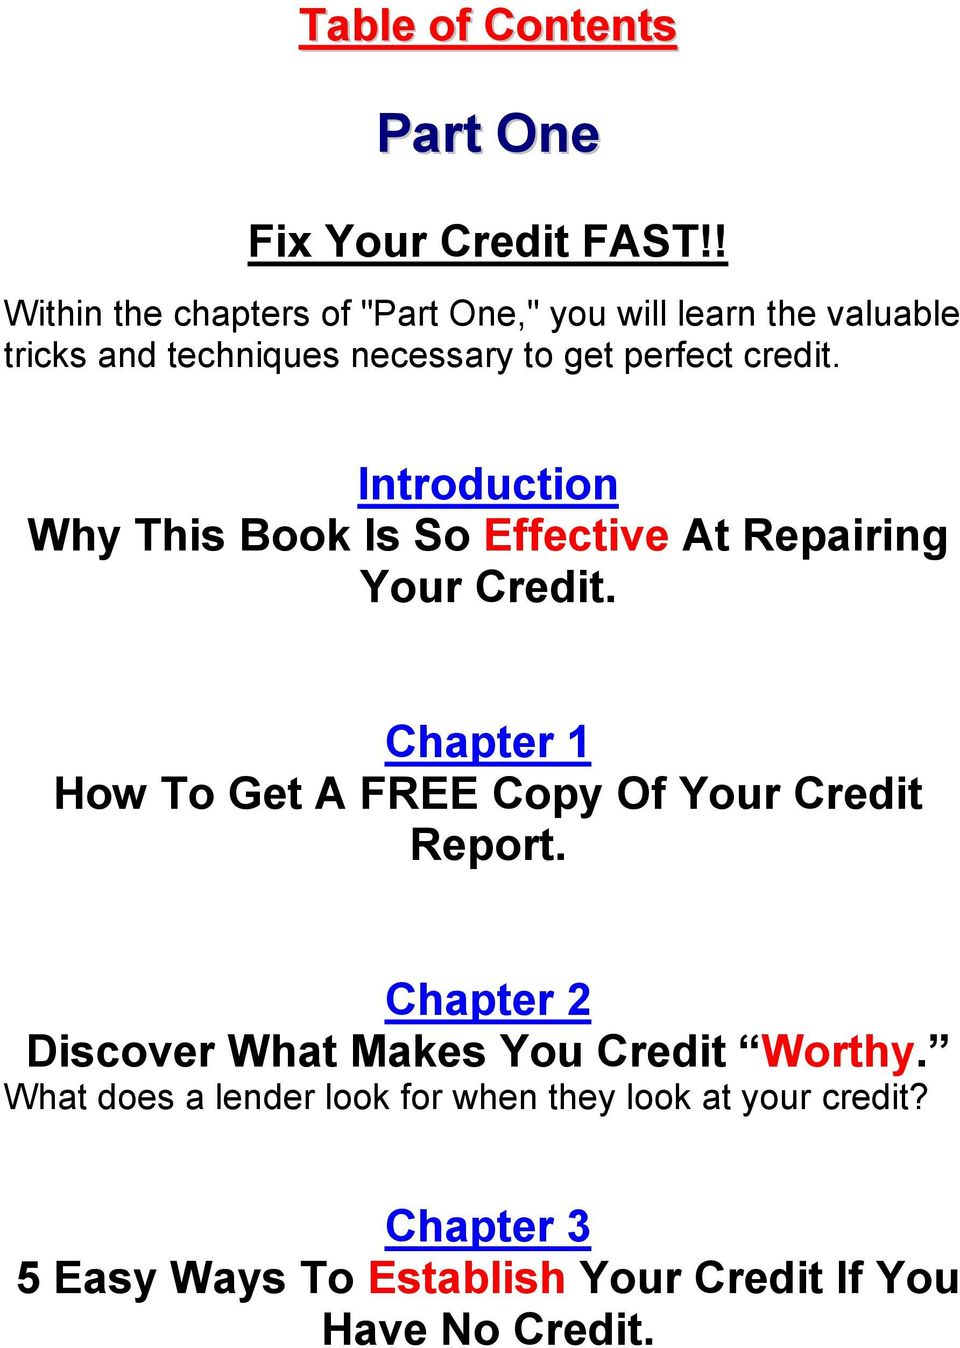 Introduction Why This Book Is So Effective At Repairing Your Credit.